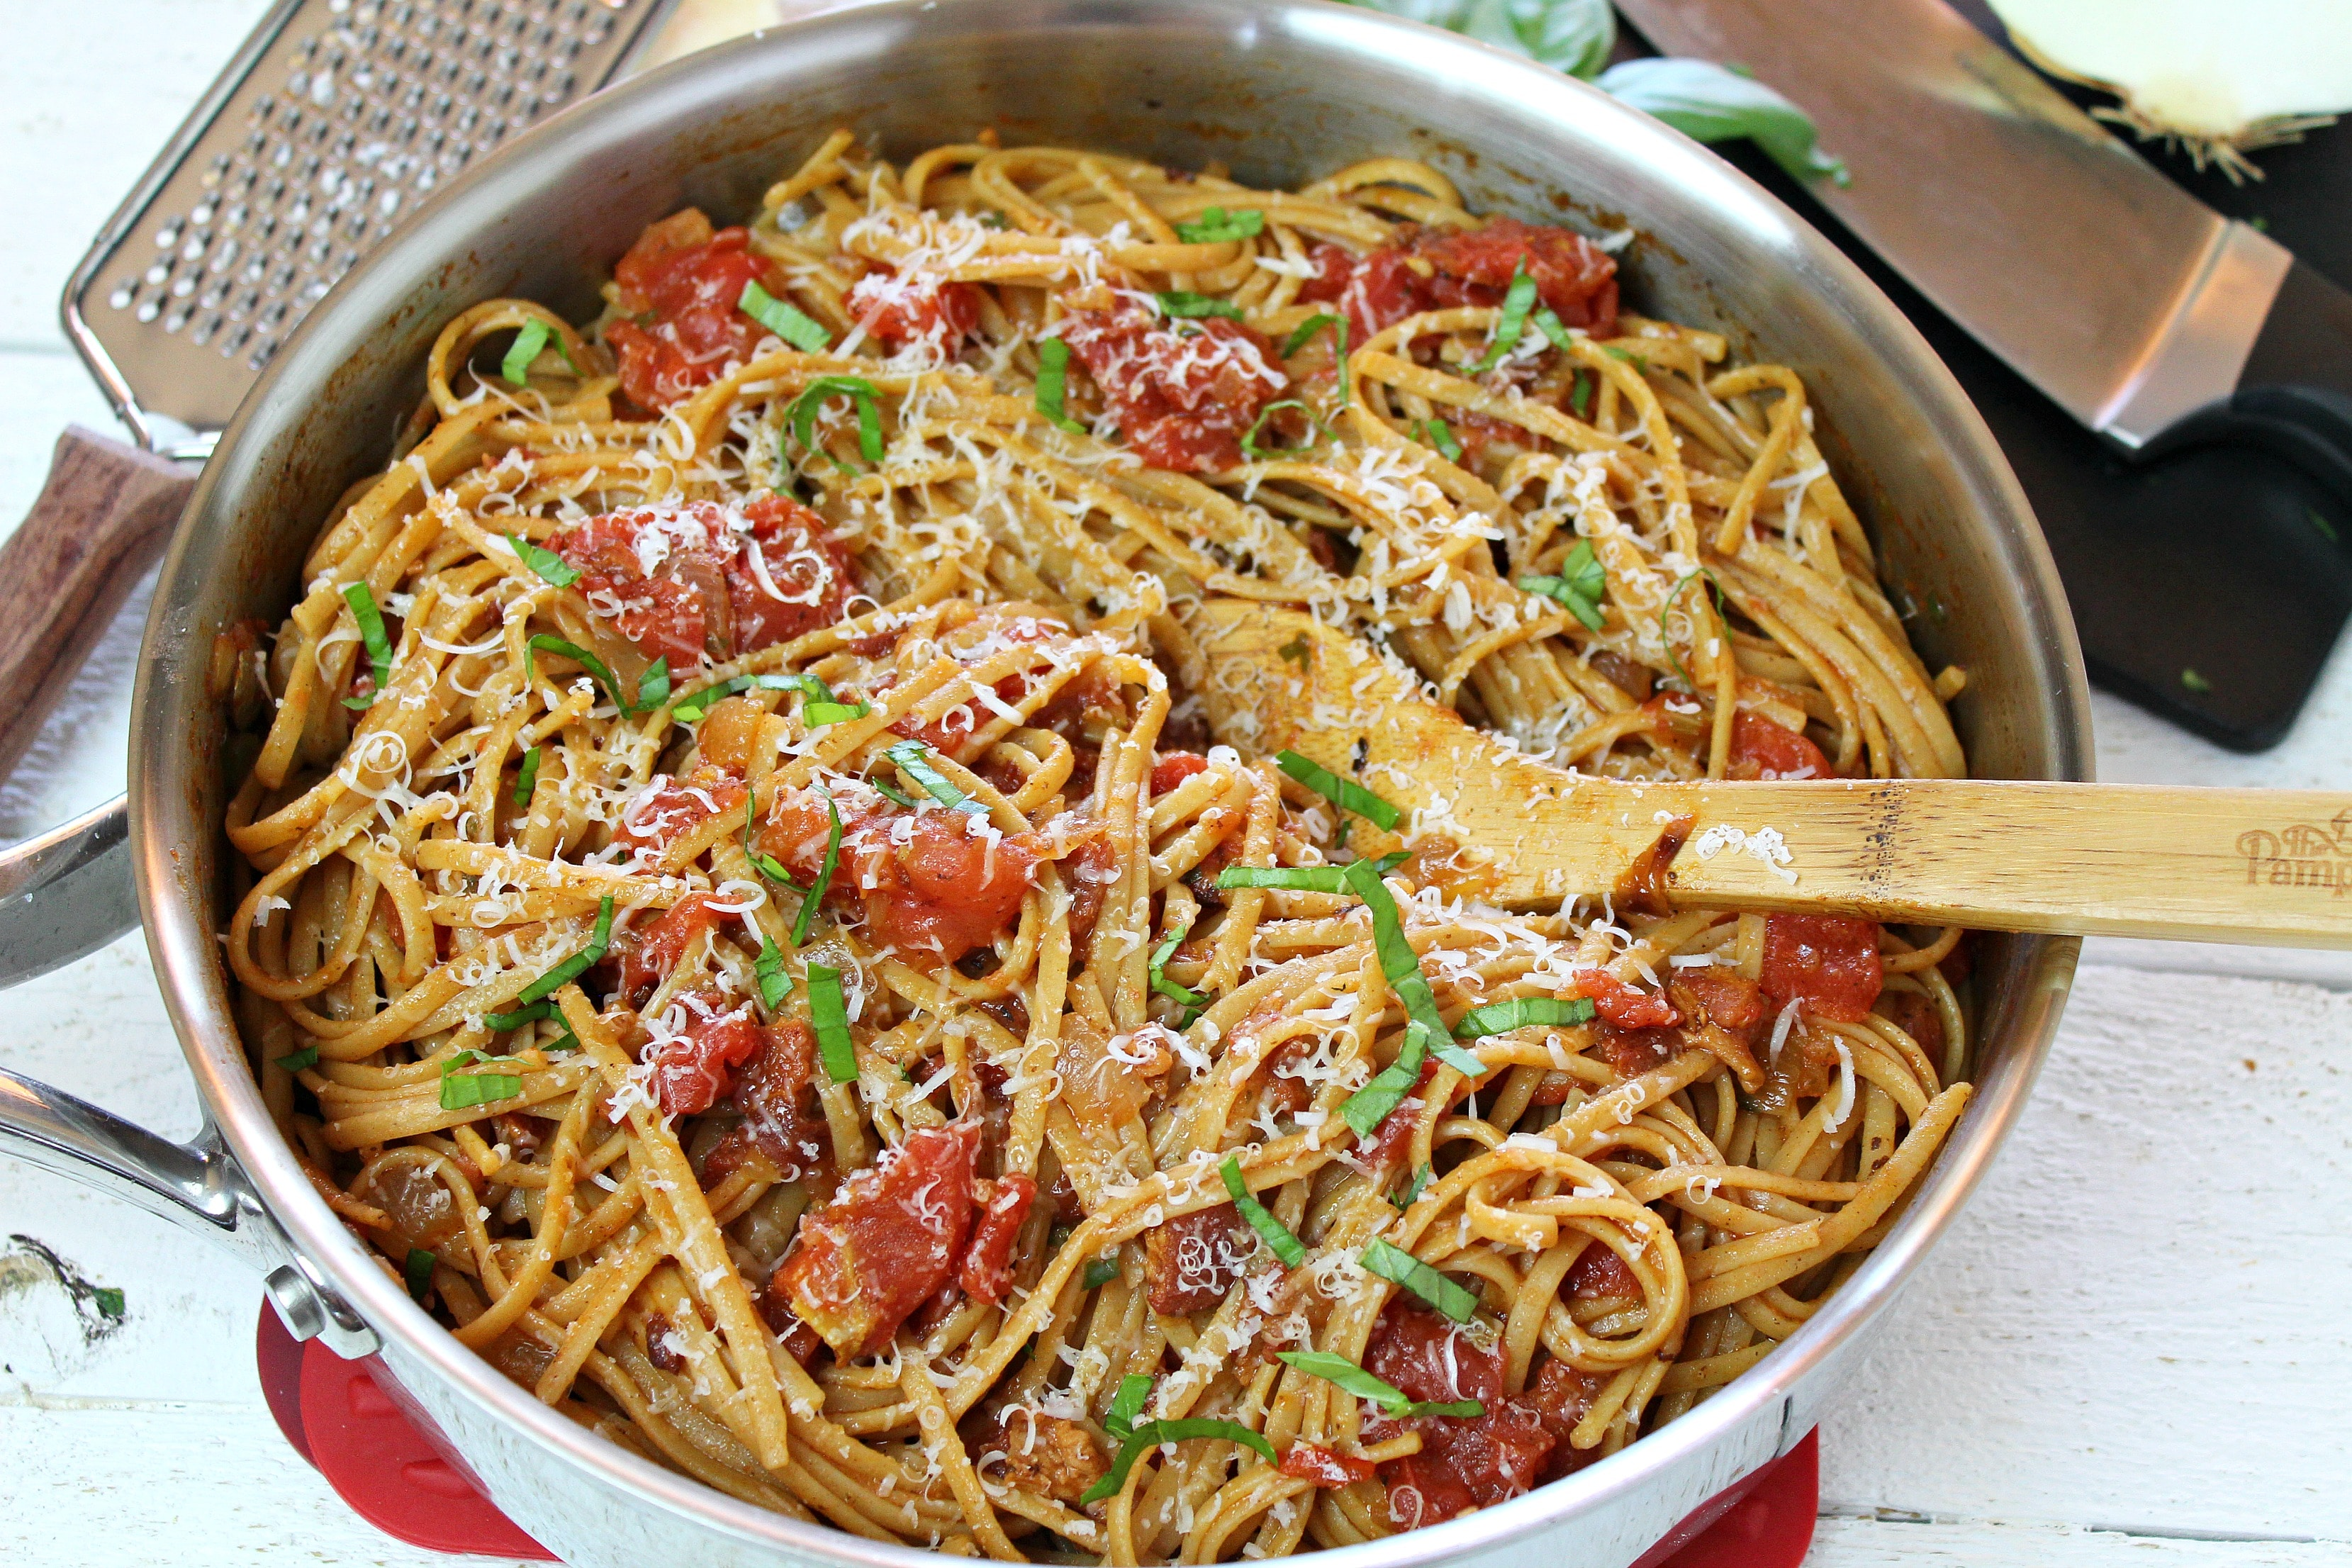 Serve linguine amatriciana topped with parmesan cheese and some chopped basil for a delicious homemade dinner